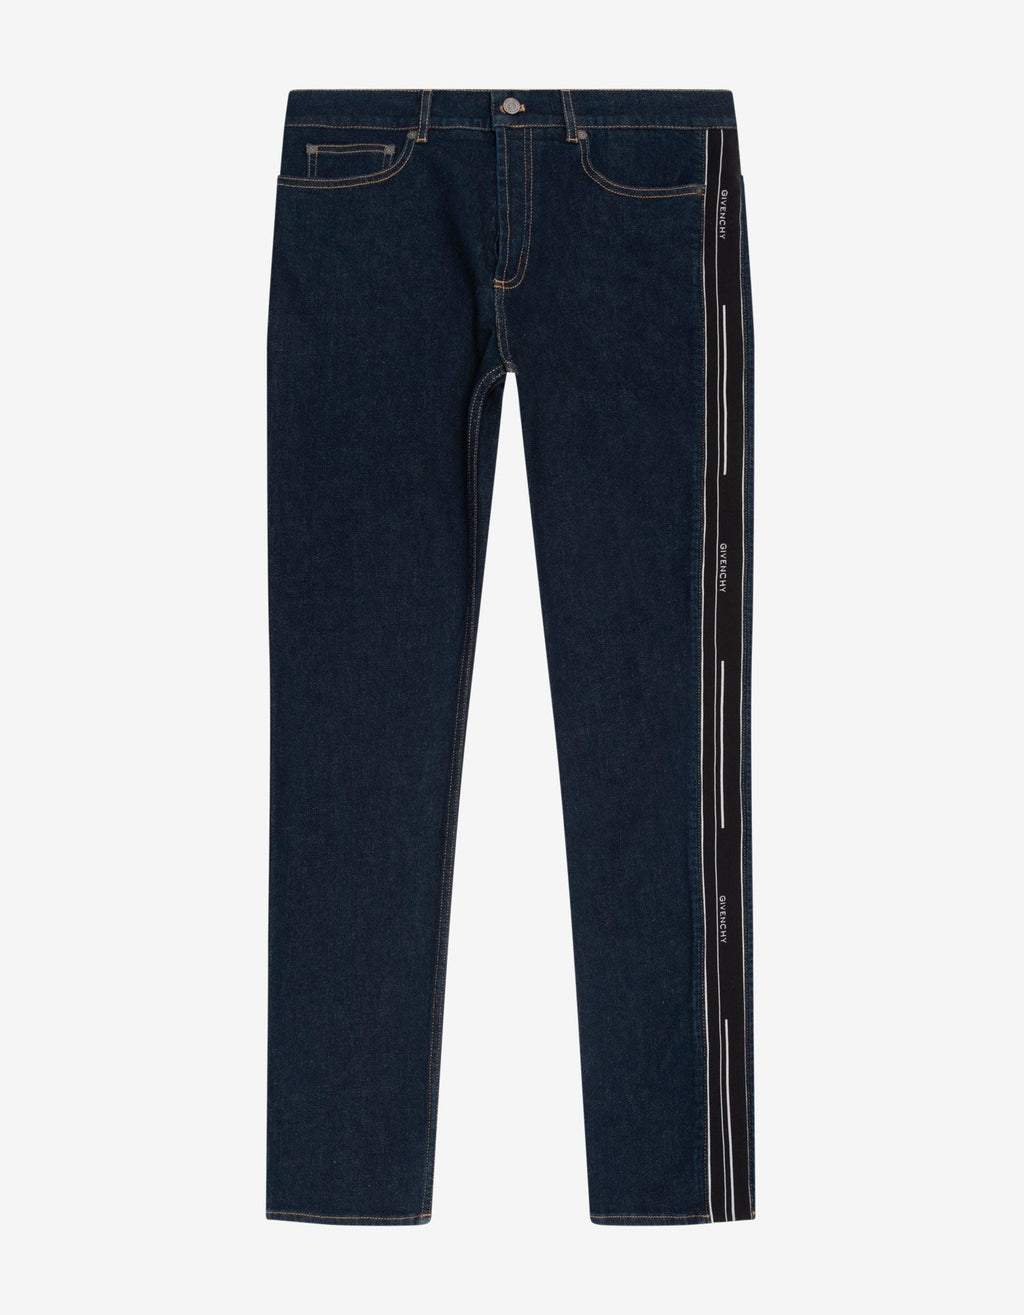 Blue Slim Jeans with Logo Bands -